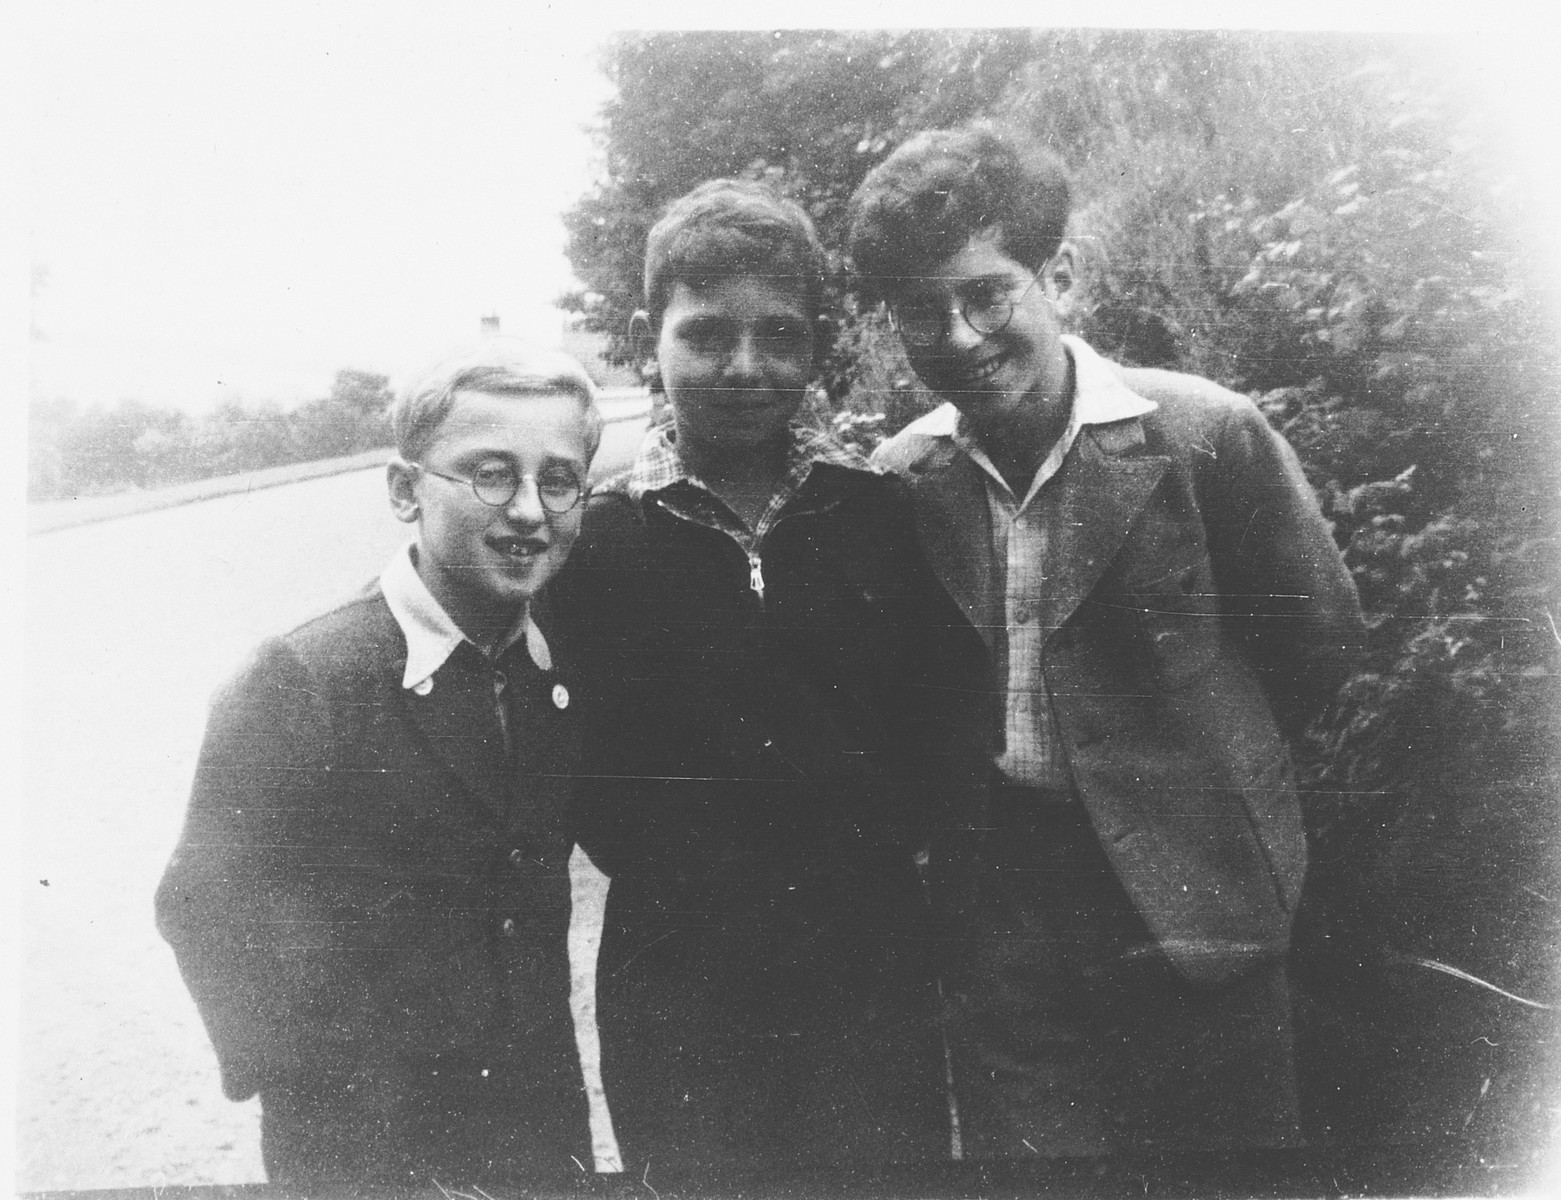 Three boys in the Priory, a children's home in Selkirk Scotland.  Pictured are Joszi Rosenzweig (Vienna),Gunther Abrahamson (Berlin) and Hans Silberstein (Danzig)  Netta Pringle, the assistant matron in the Priory, formed warm relations with many of the twenty-one Jewish children.  She took most of the photographs, which she assembled in the album and wrote the inscriptions.  In 1996 Miss Pringle gave the album to Gunther.